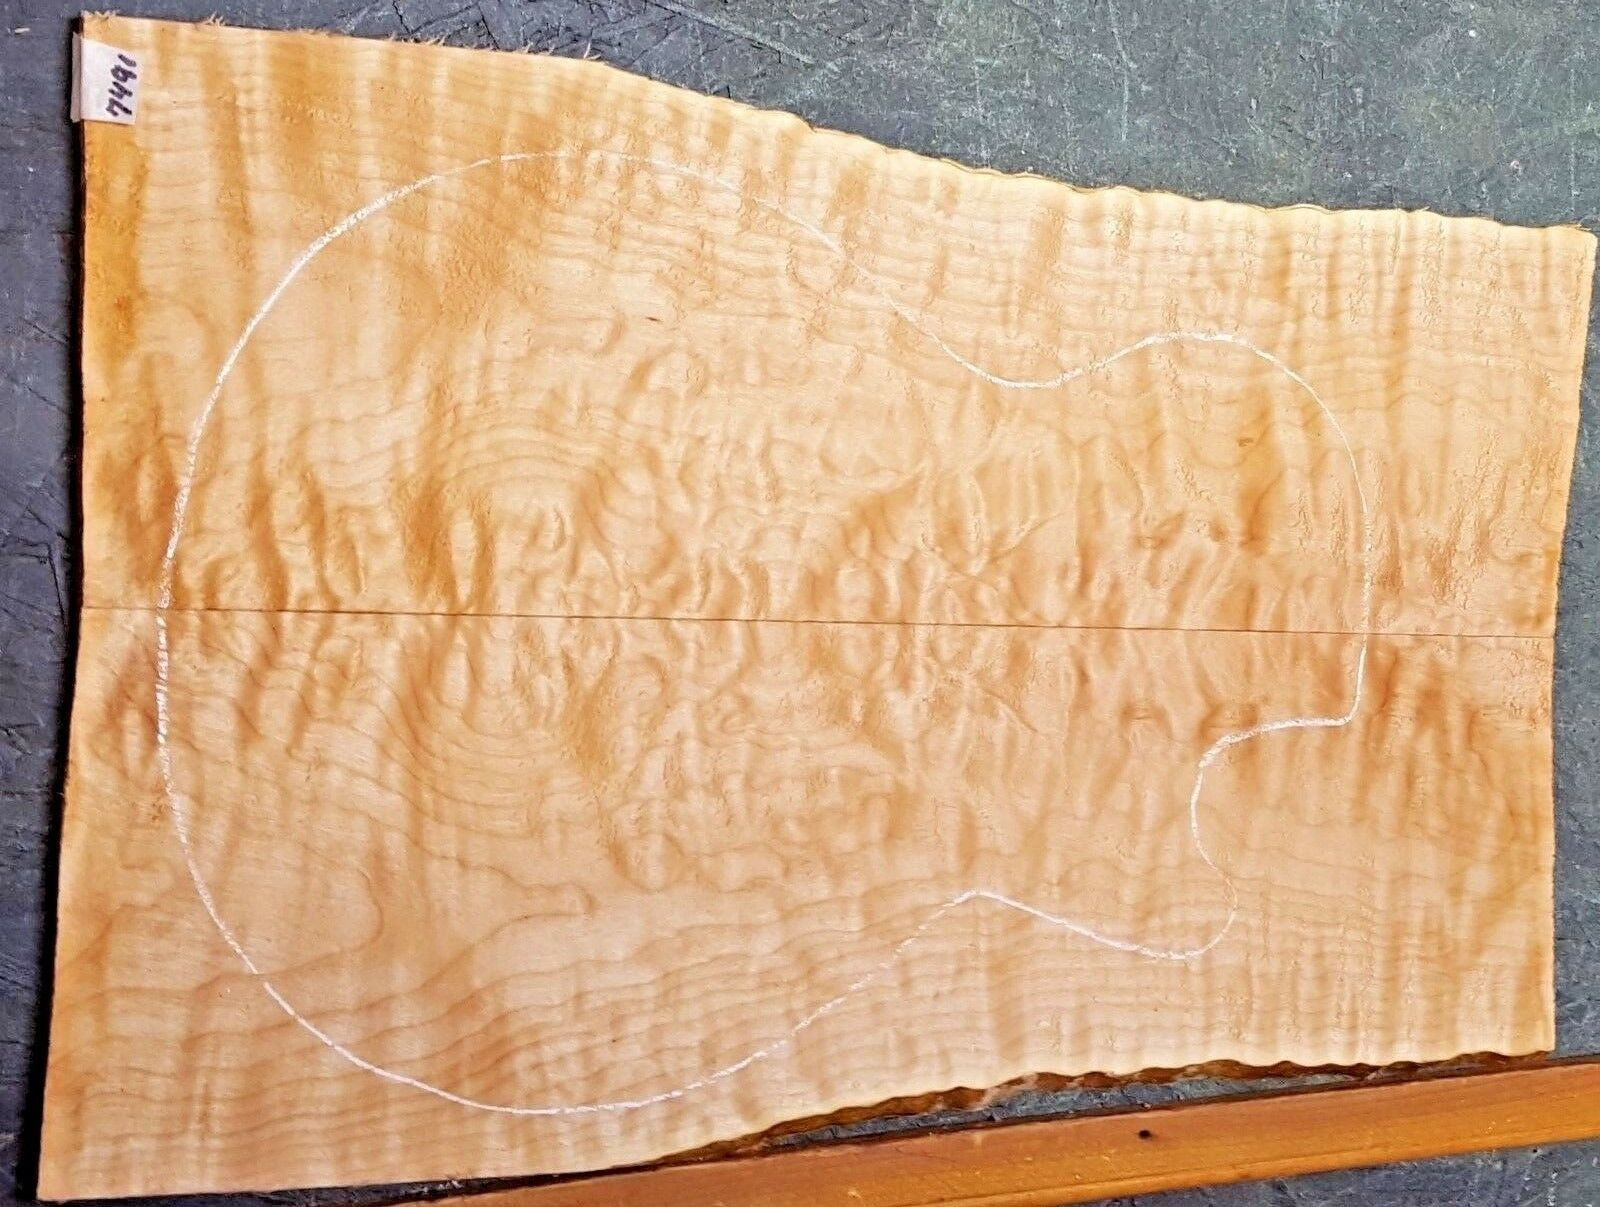 QUILTED 5A CURLY Maple Wood  7491 Luthier Electric Guitar Top Set 22 x 15 x 3/8